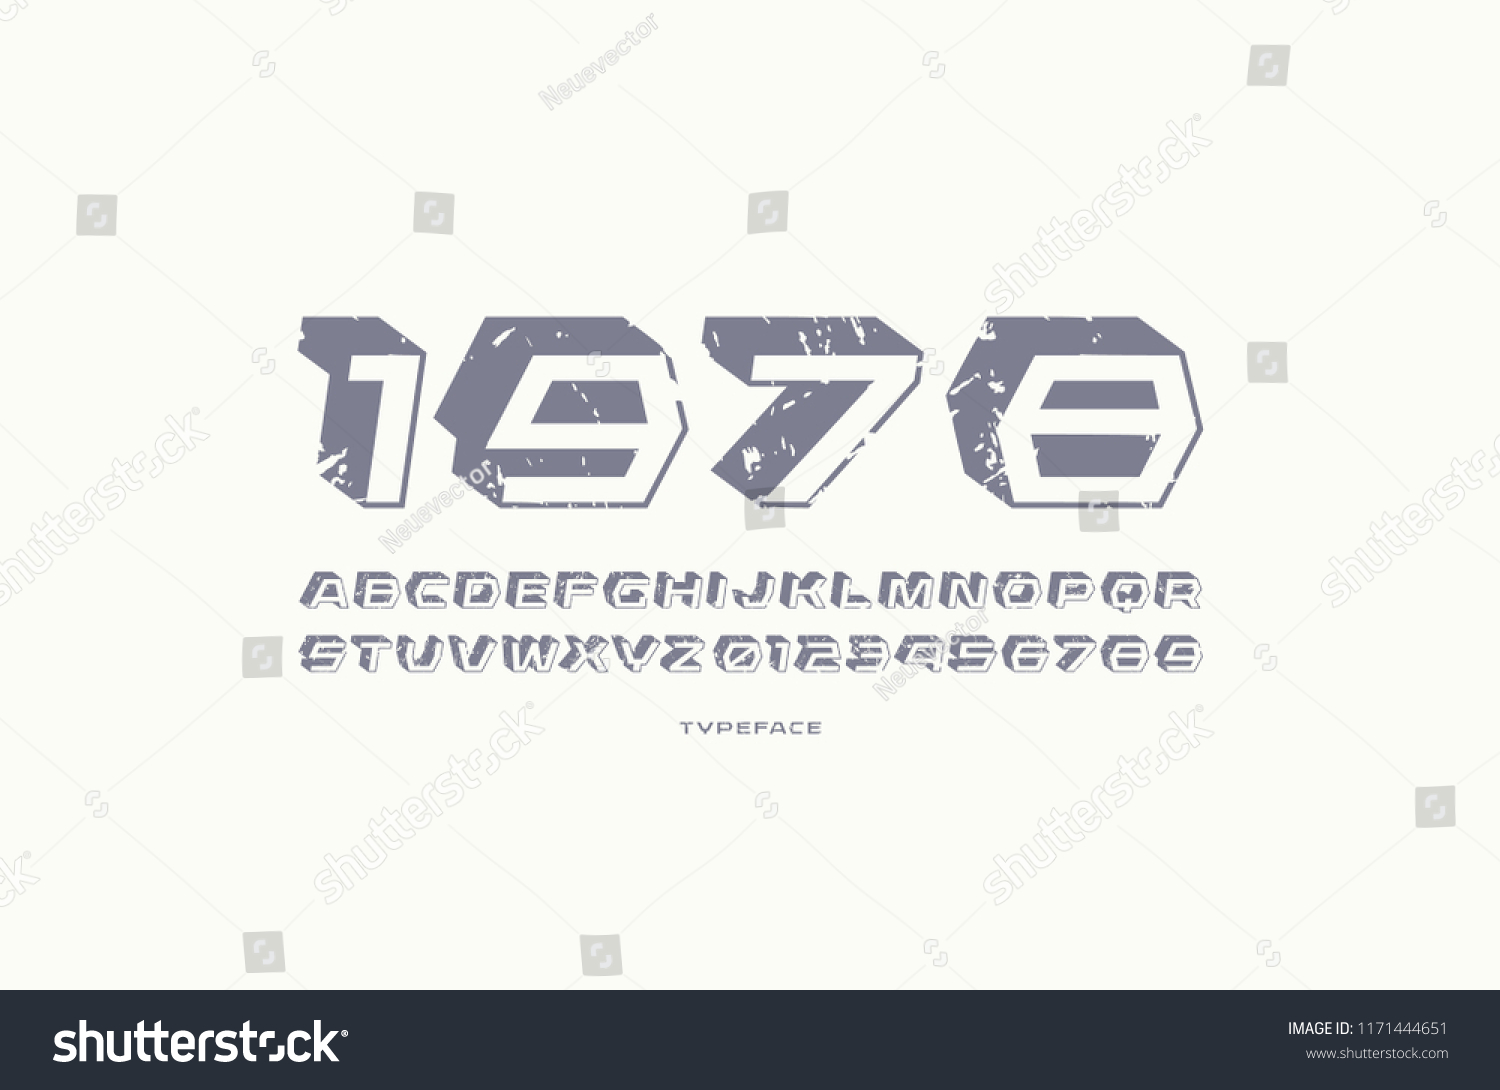 Geometric sans serif font with drop shadow letters and numbers with vintage texture for sci